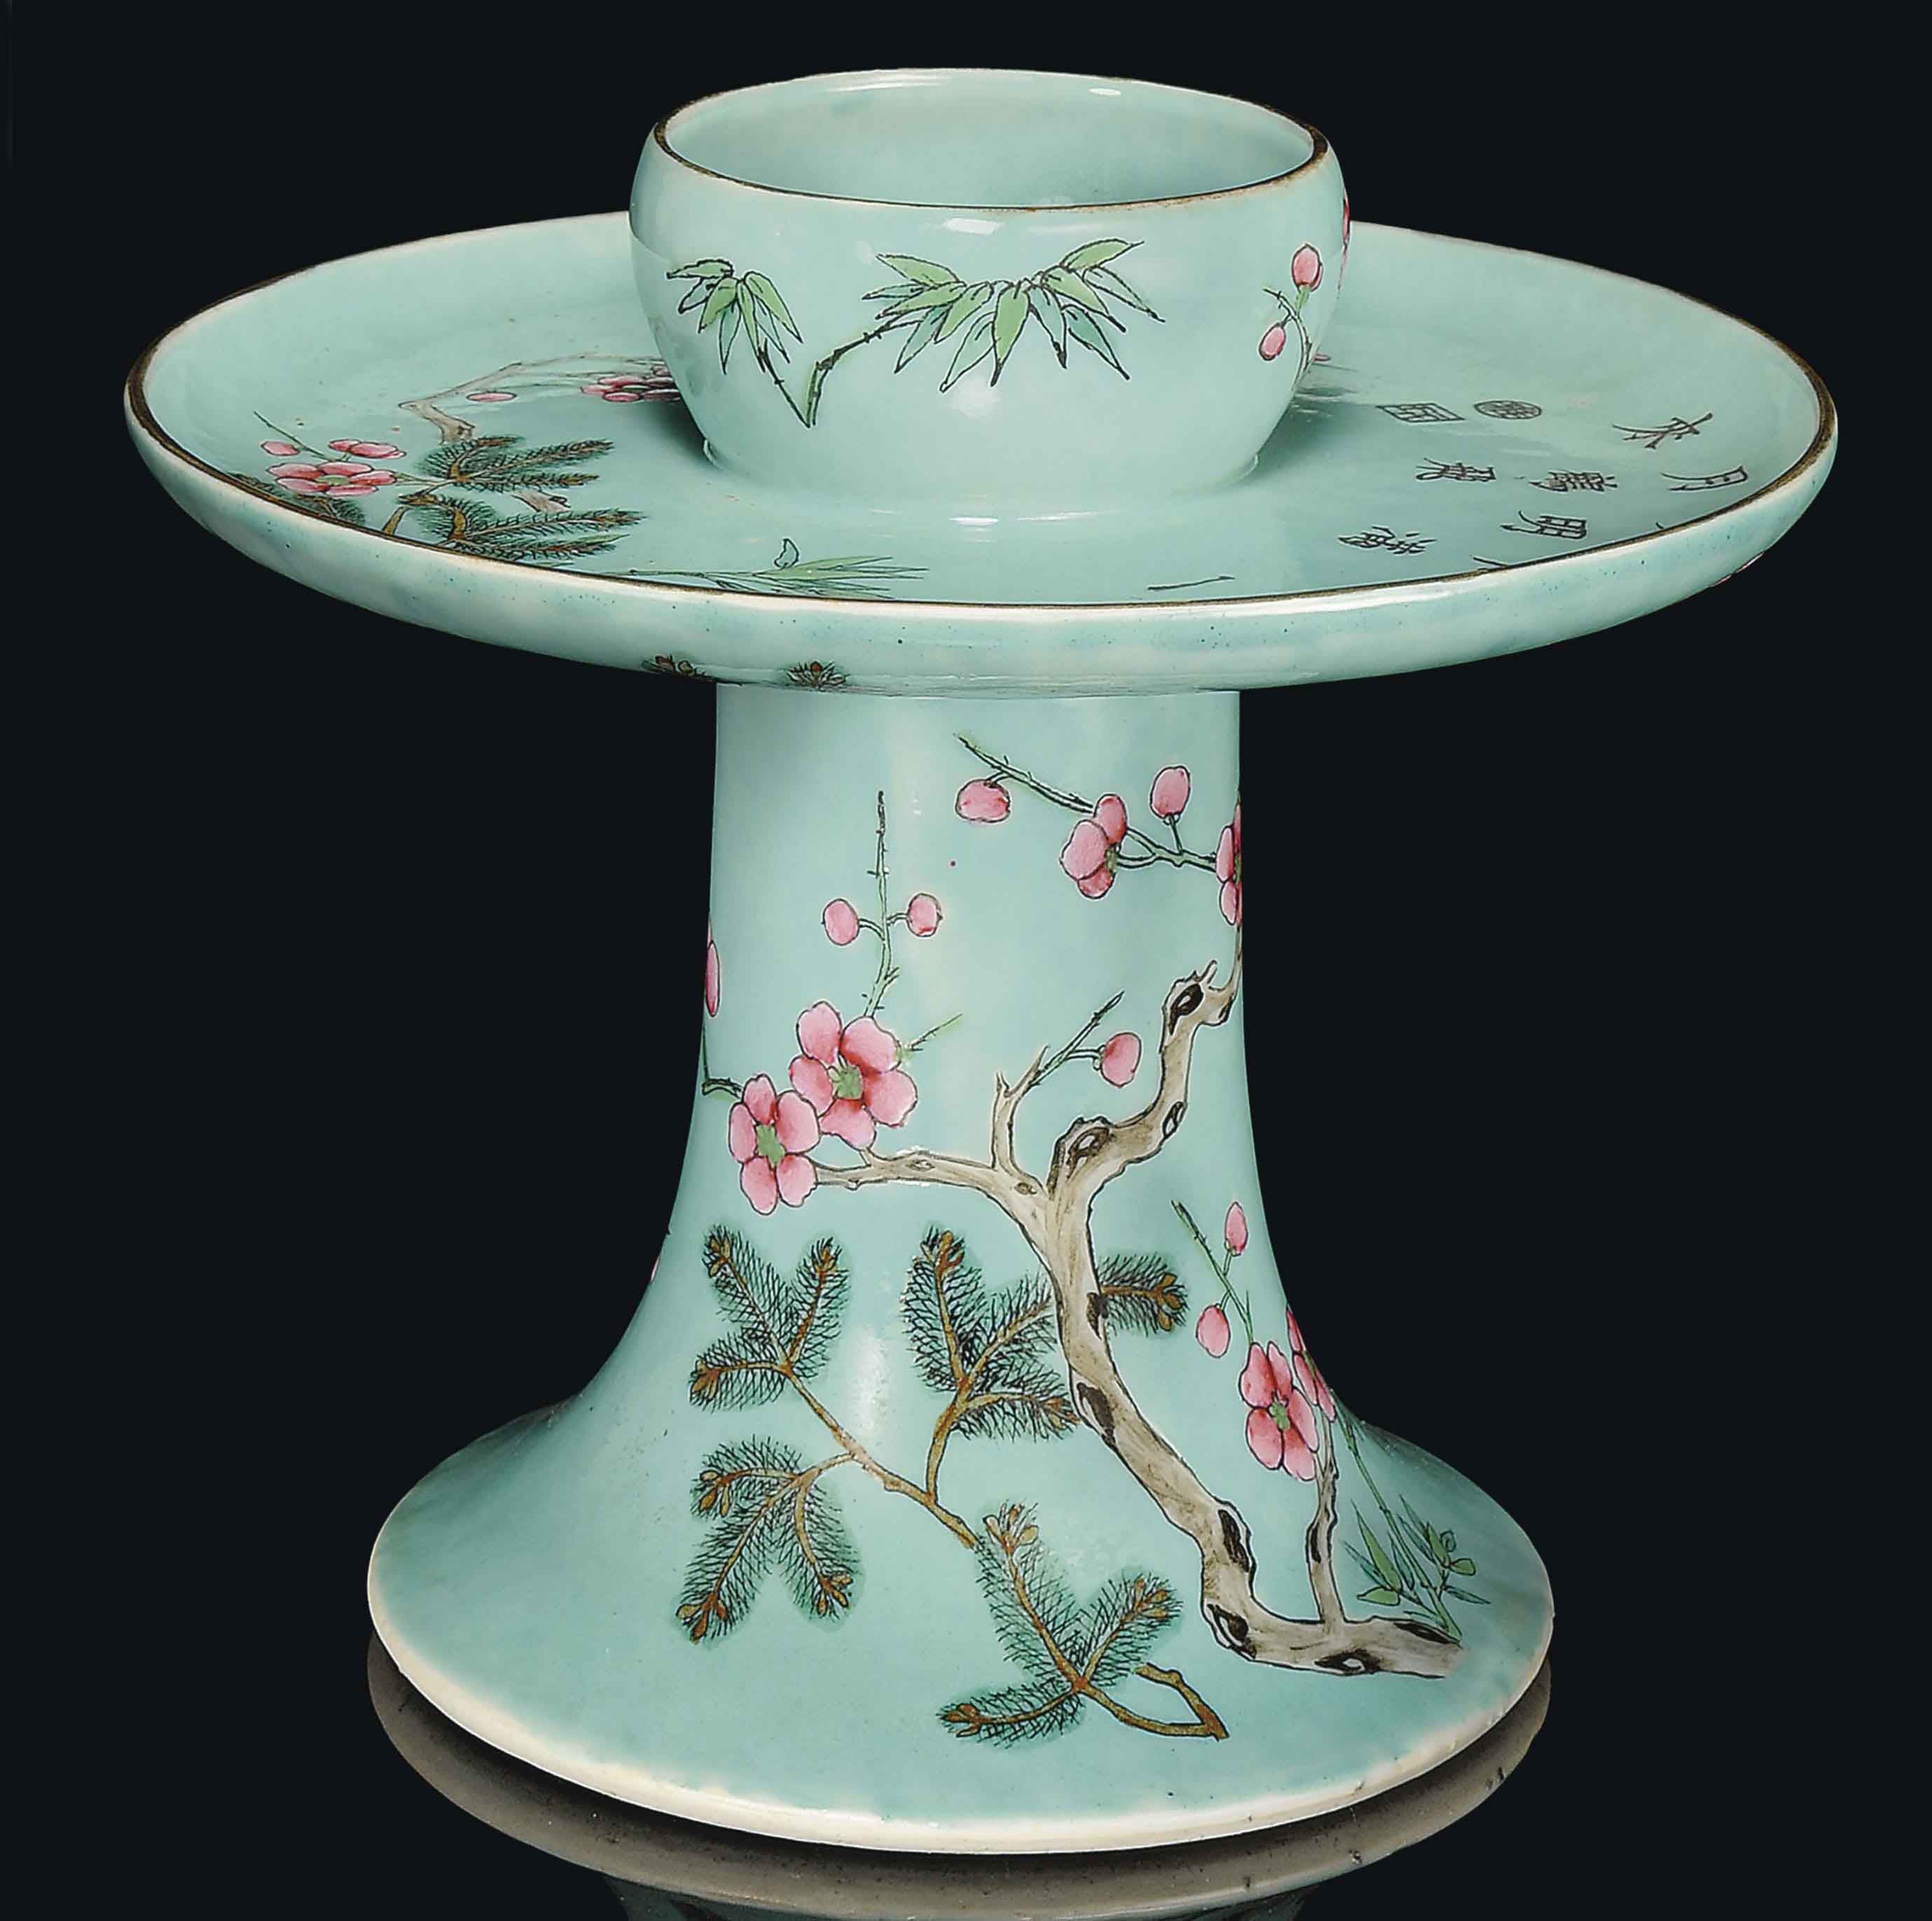 A FAMILLE ROSE TURQUOISE-GROUND CANDLE HOLDER